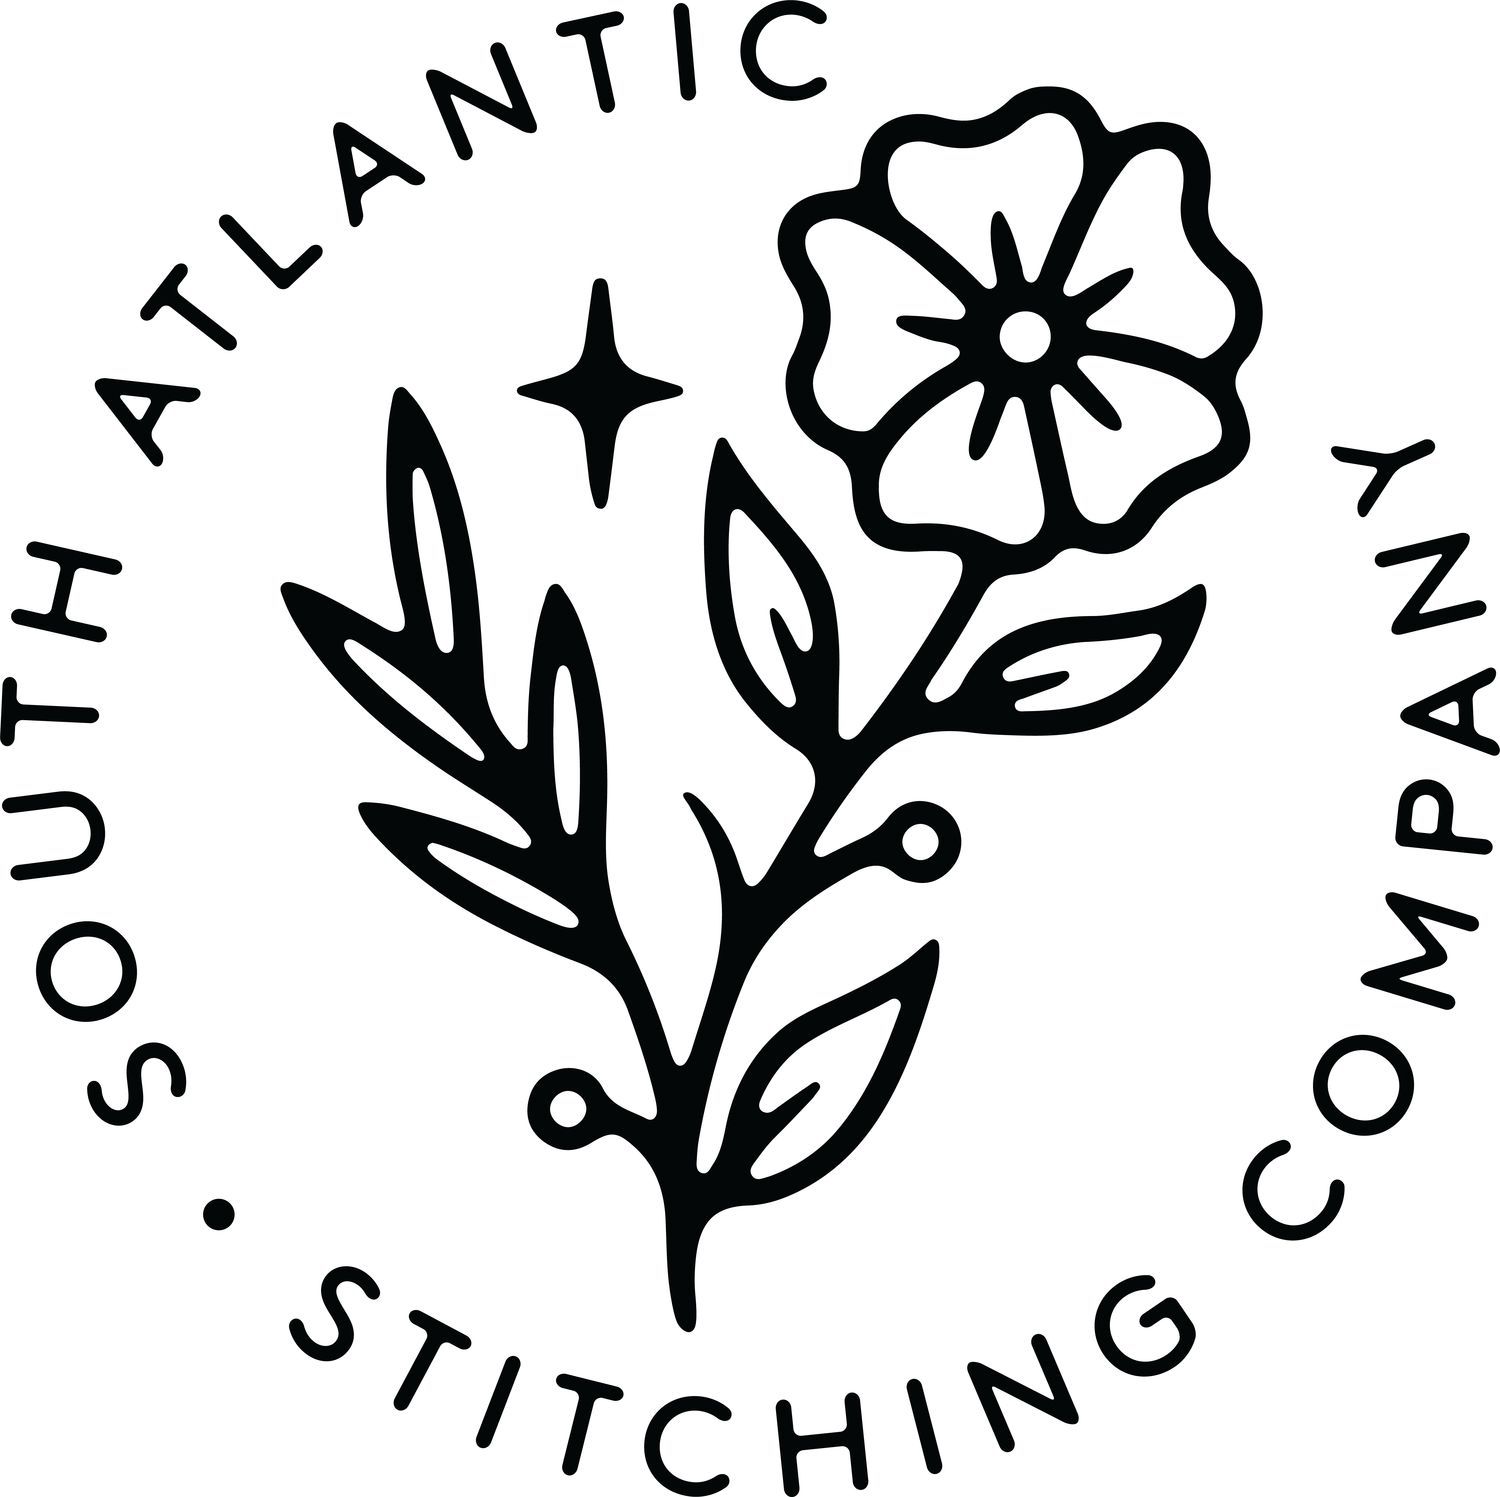 South Atlantic Stitching Company